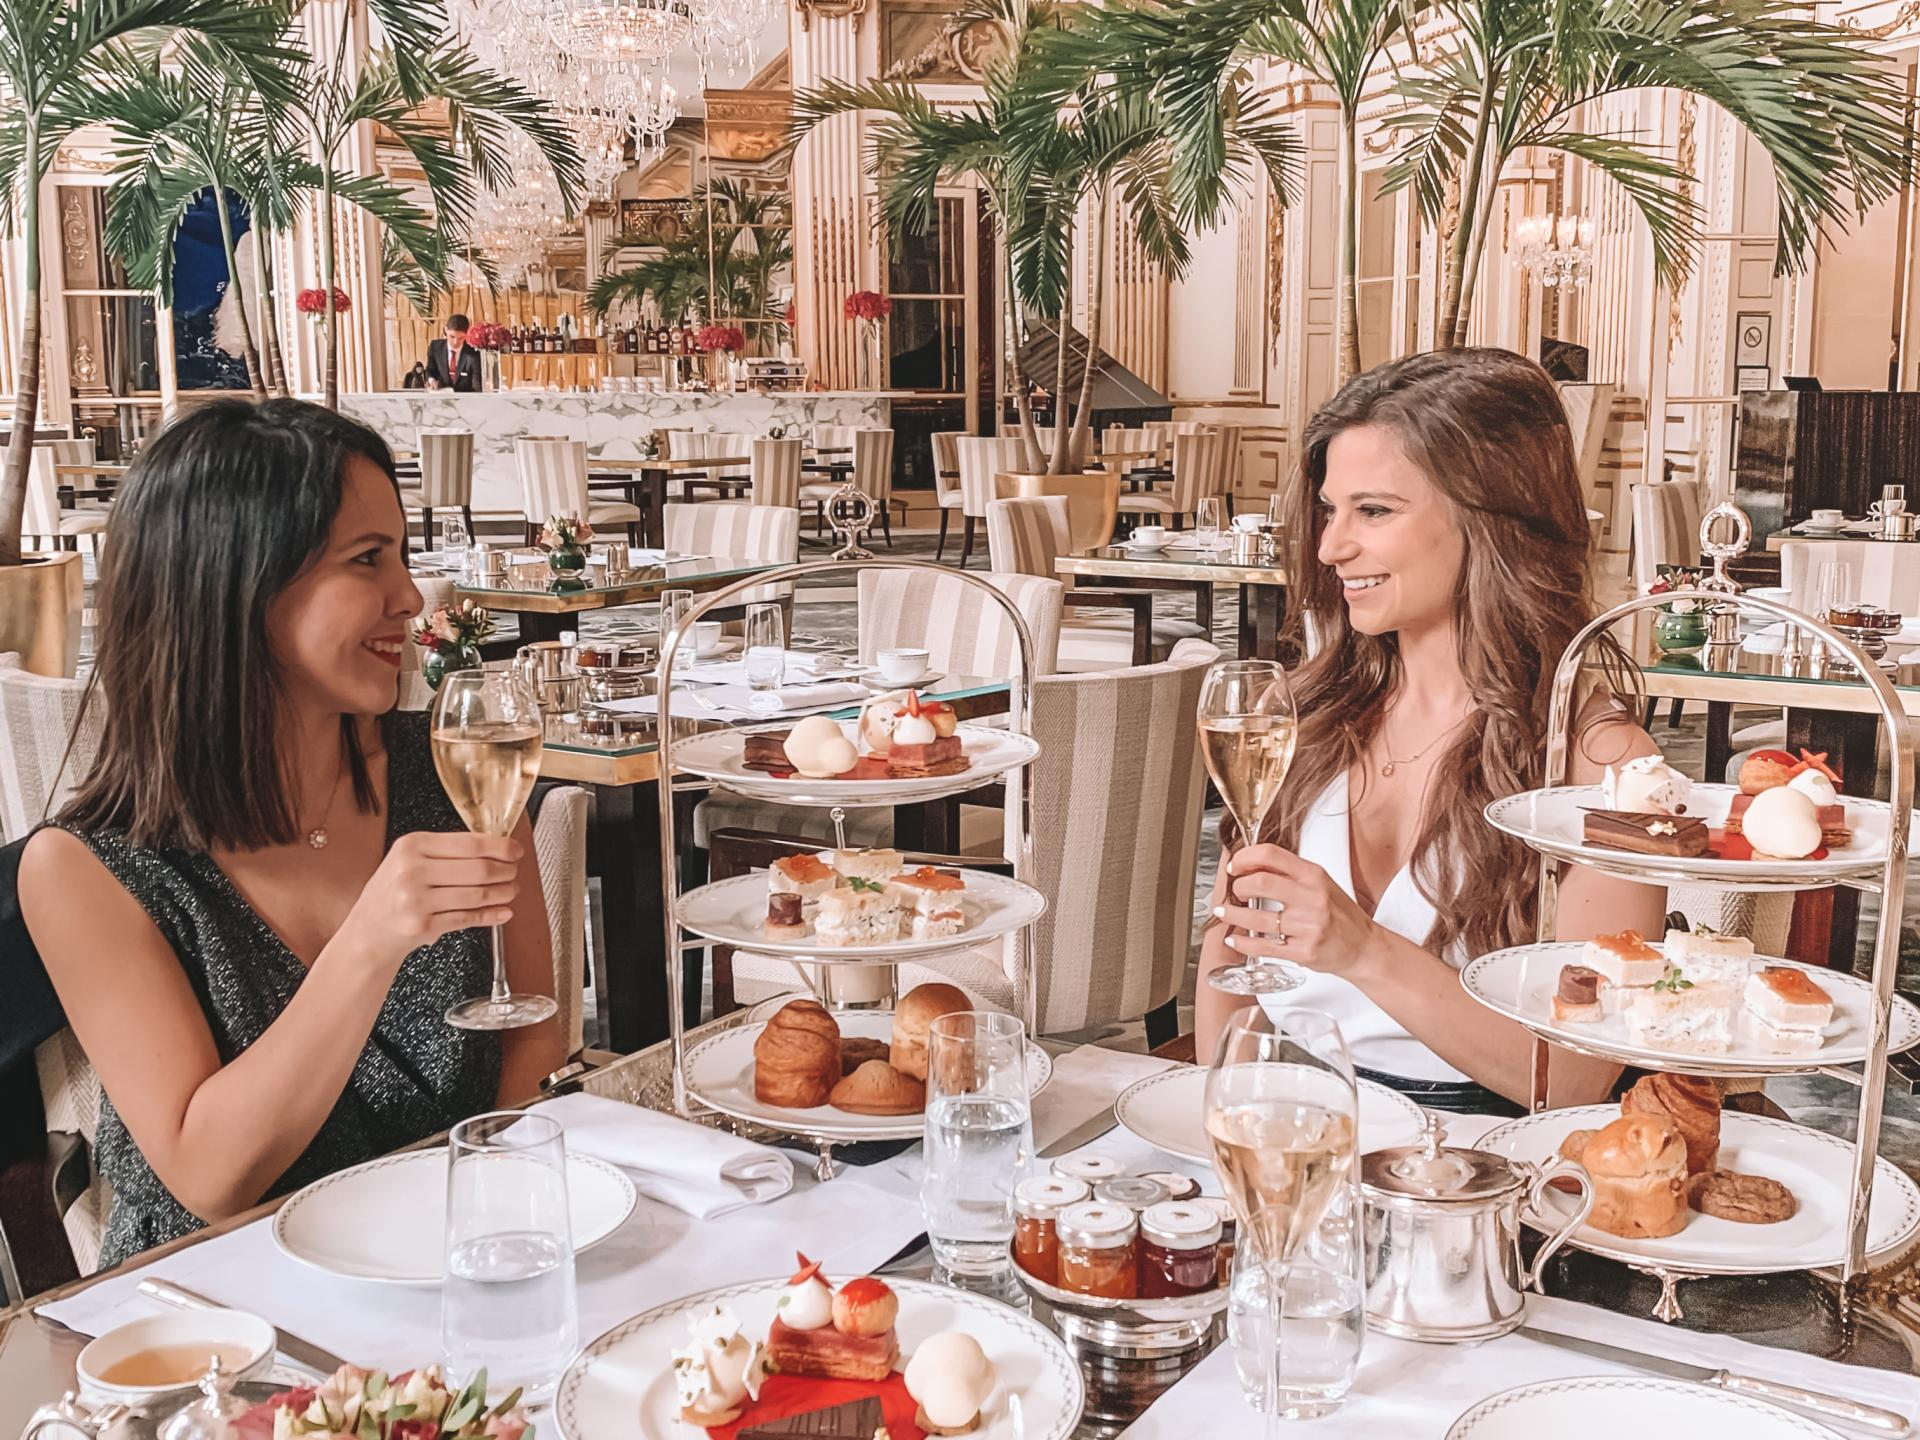 afternoon tea time at the peninsula in paris